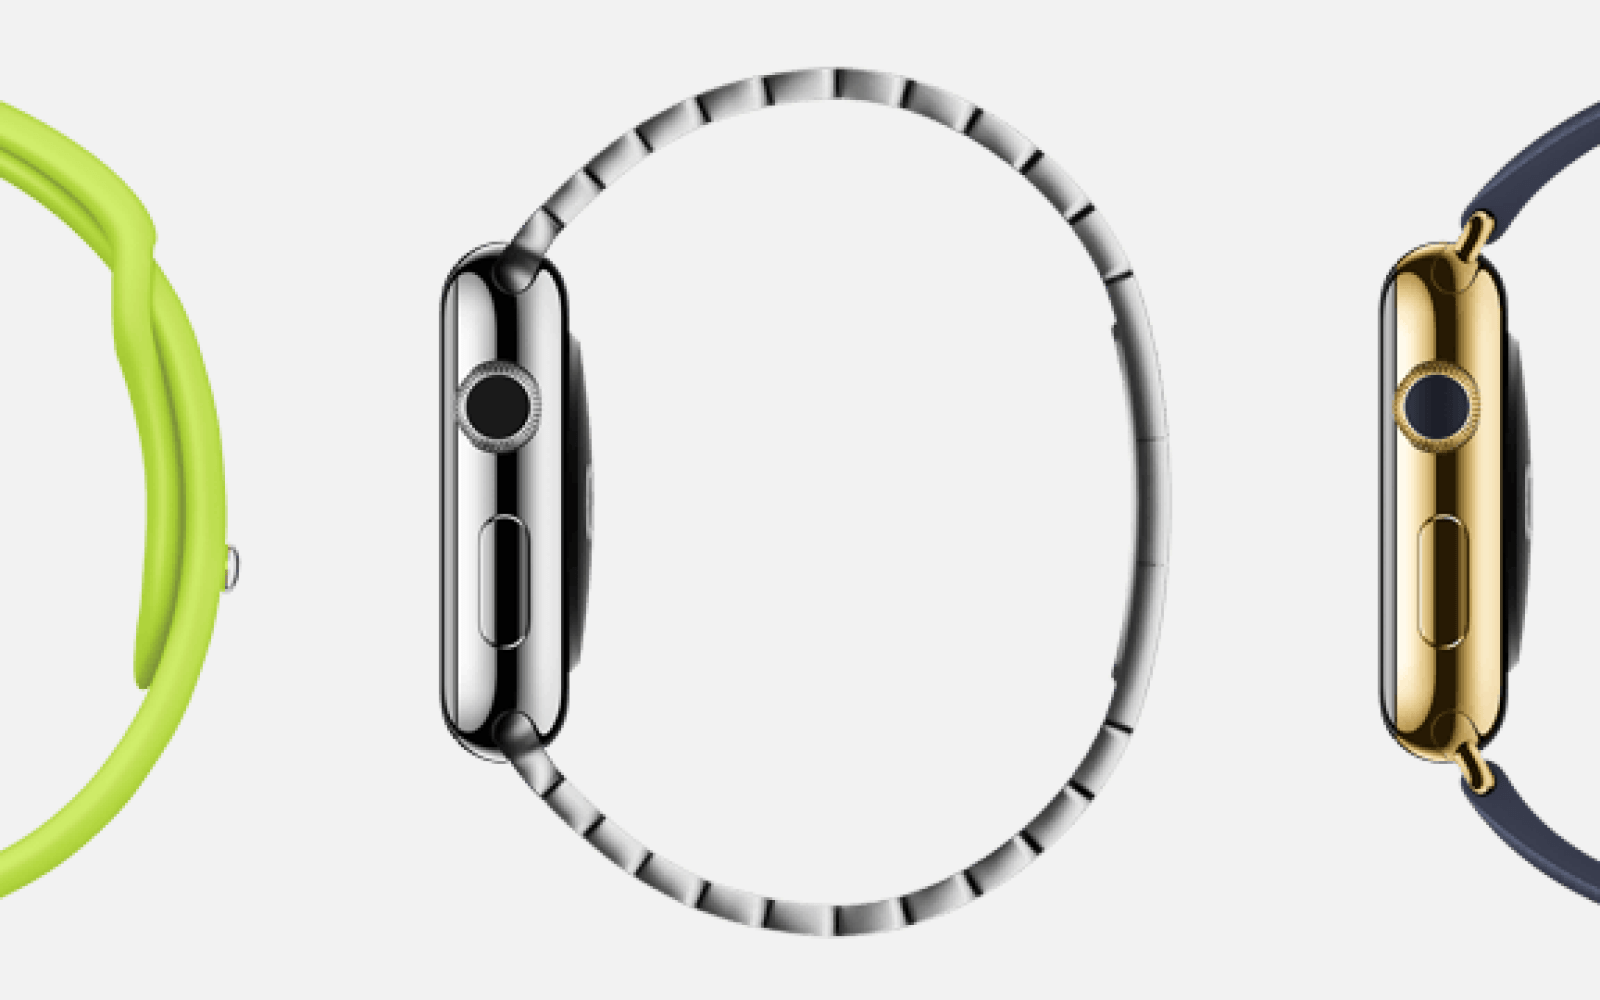 Latest Slice estimates put U.S. Apple Watch sales at 2.8M as IHS analysis says $49 band costs Apple $2